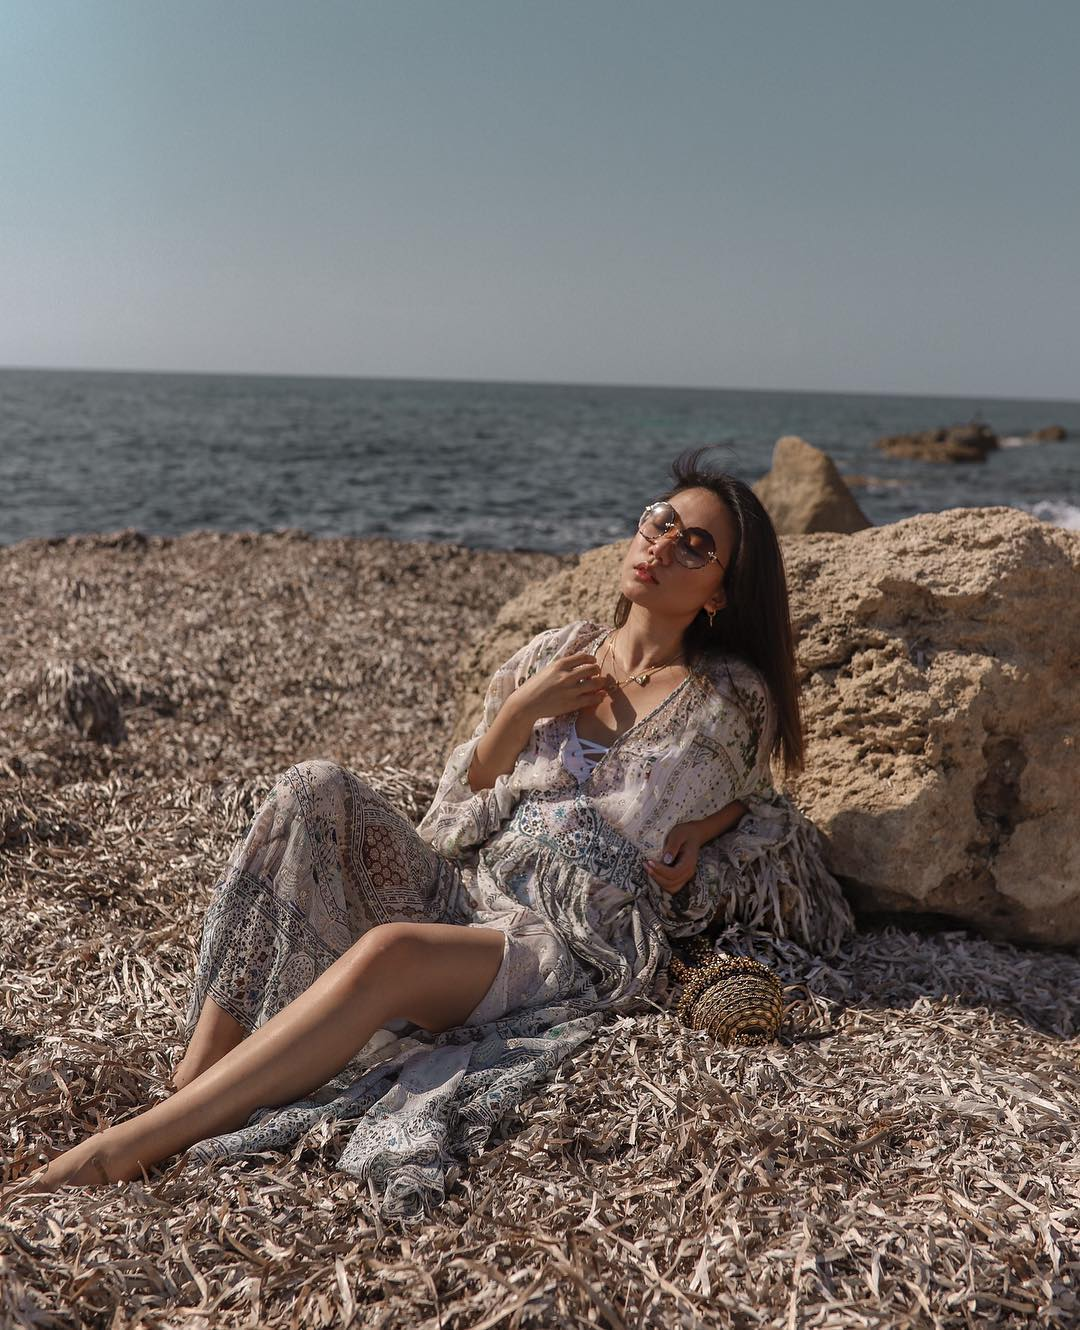 Simi sparkle Mae CASSIDY GOLD SPARKLY CLUTCH BAG UK The Haute Heel's columnist Evening Standard's top 25 Influencer of the year Andrea Cheong Cyprus  Camilla With Love printed dress Chloe Sunglasses holiday style summer occasion wear beach